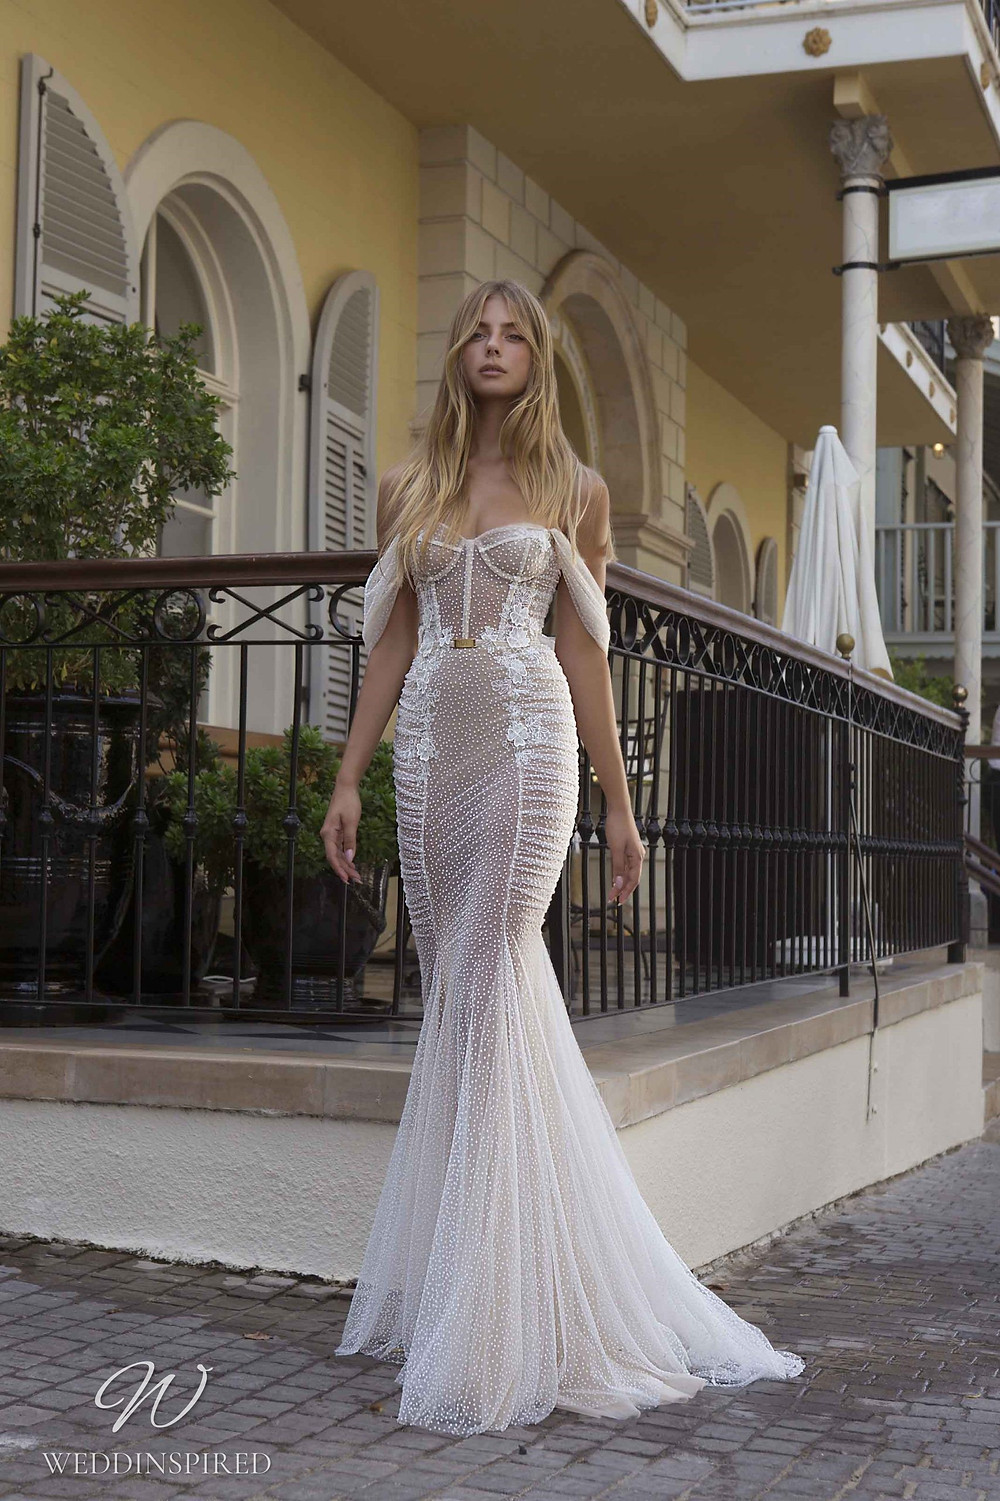 A Berta Priveé No 5 2021 nude off the shoulder mesh and tulle mermaid wedding dress